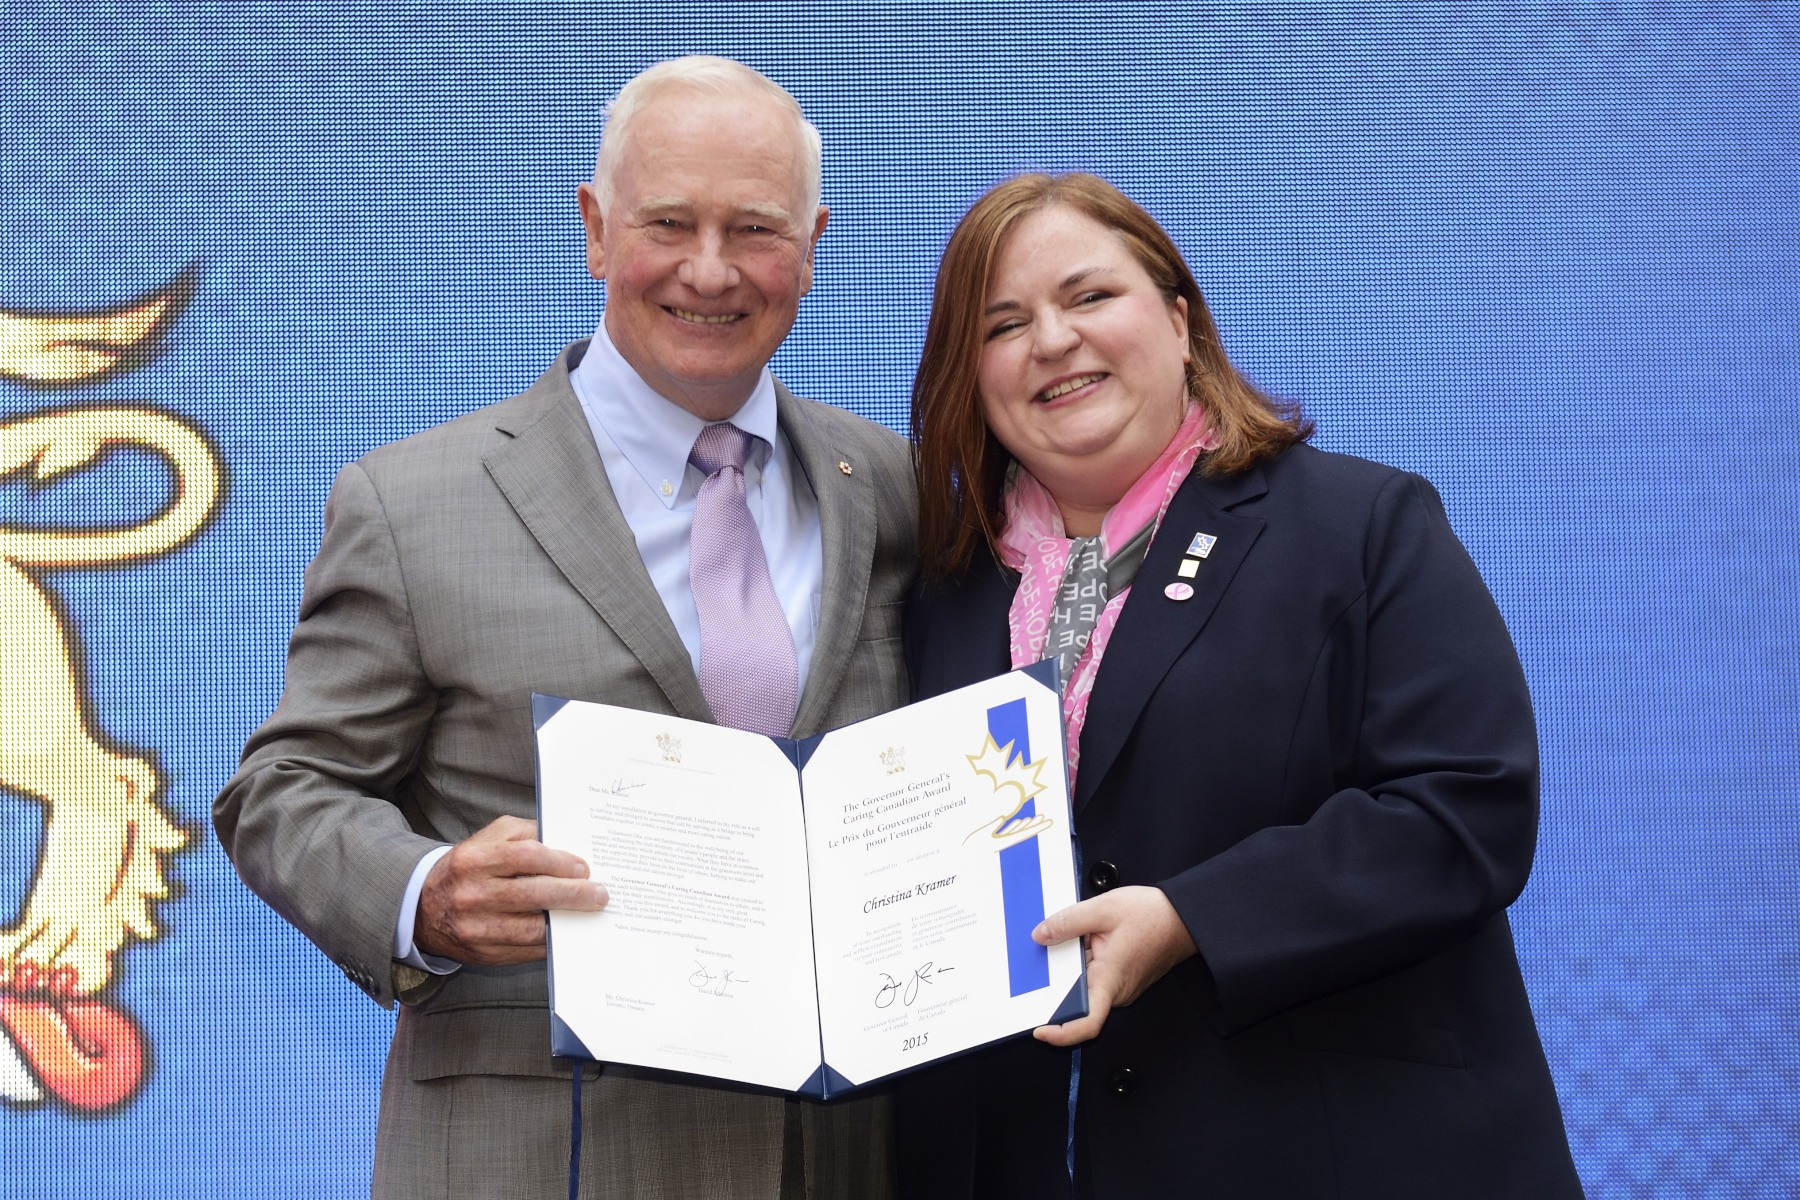 During the event, the Governor General presented the Caring Canadian Award to Ms. Christina Kramer, CIBC's lead volunteer and executive sponsor for the Canadian Breast Cancer Foundation CIBC Run for the Cure.